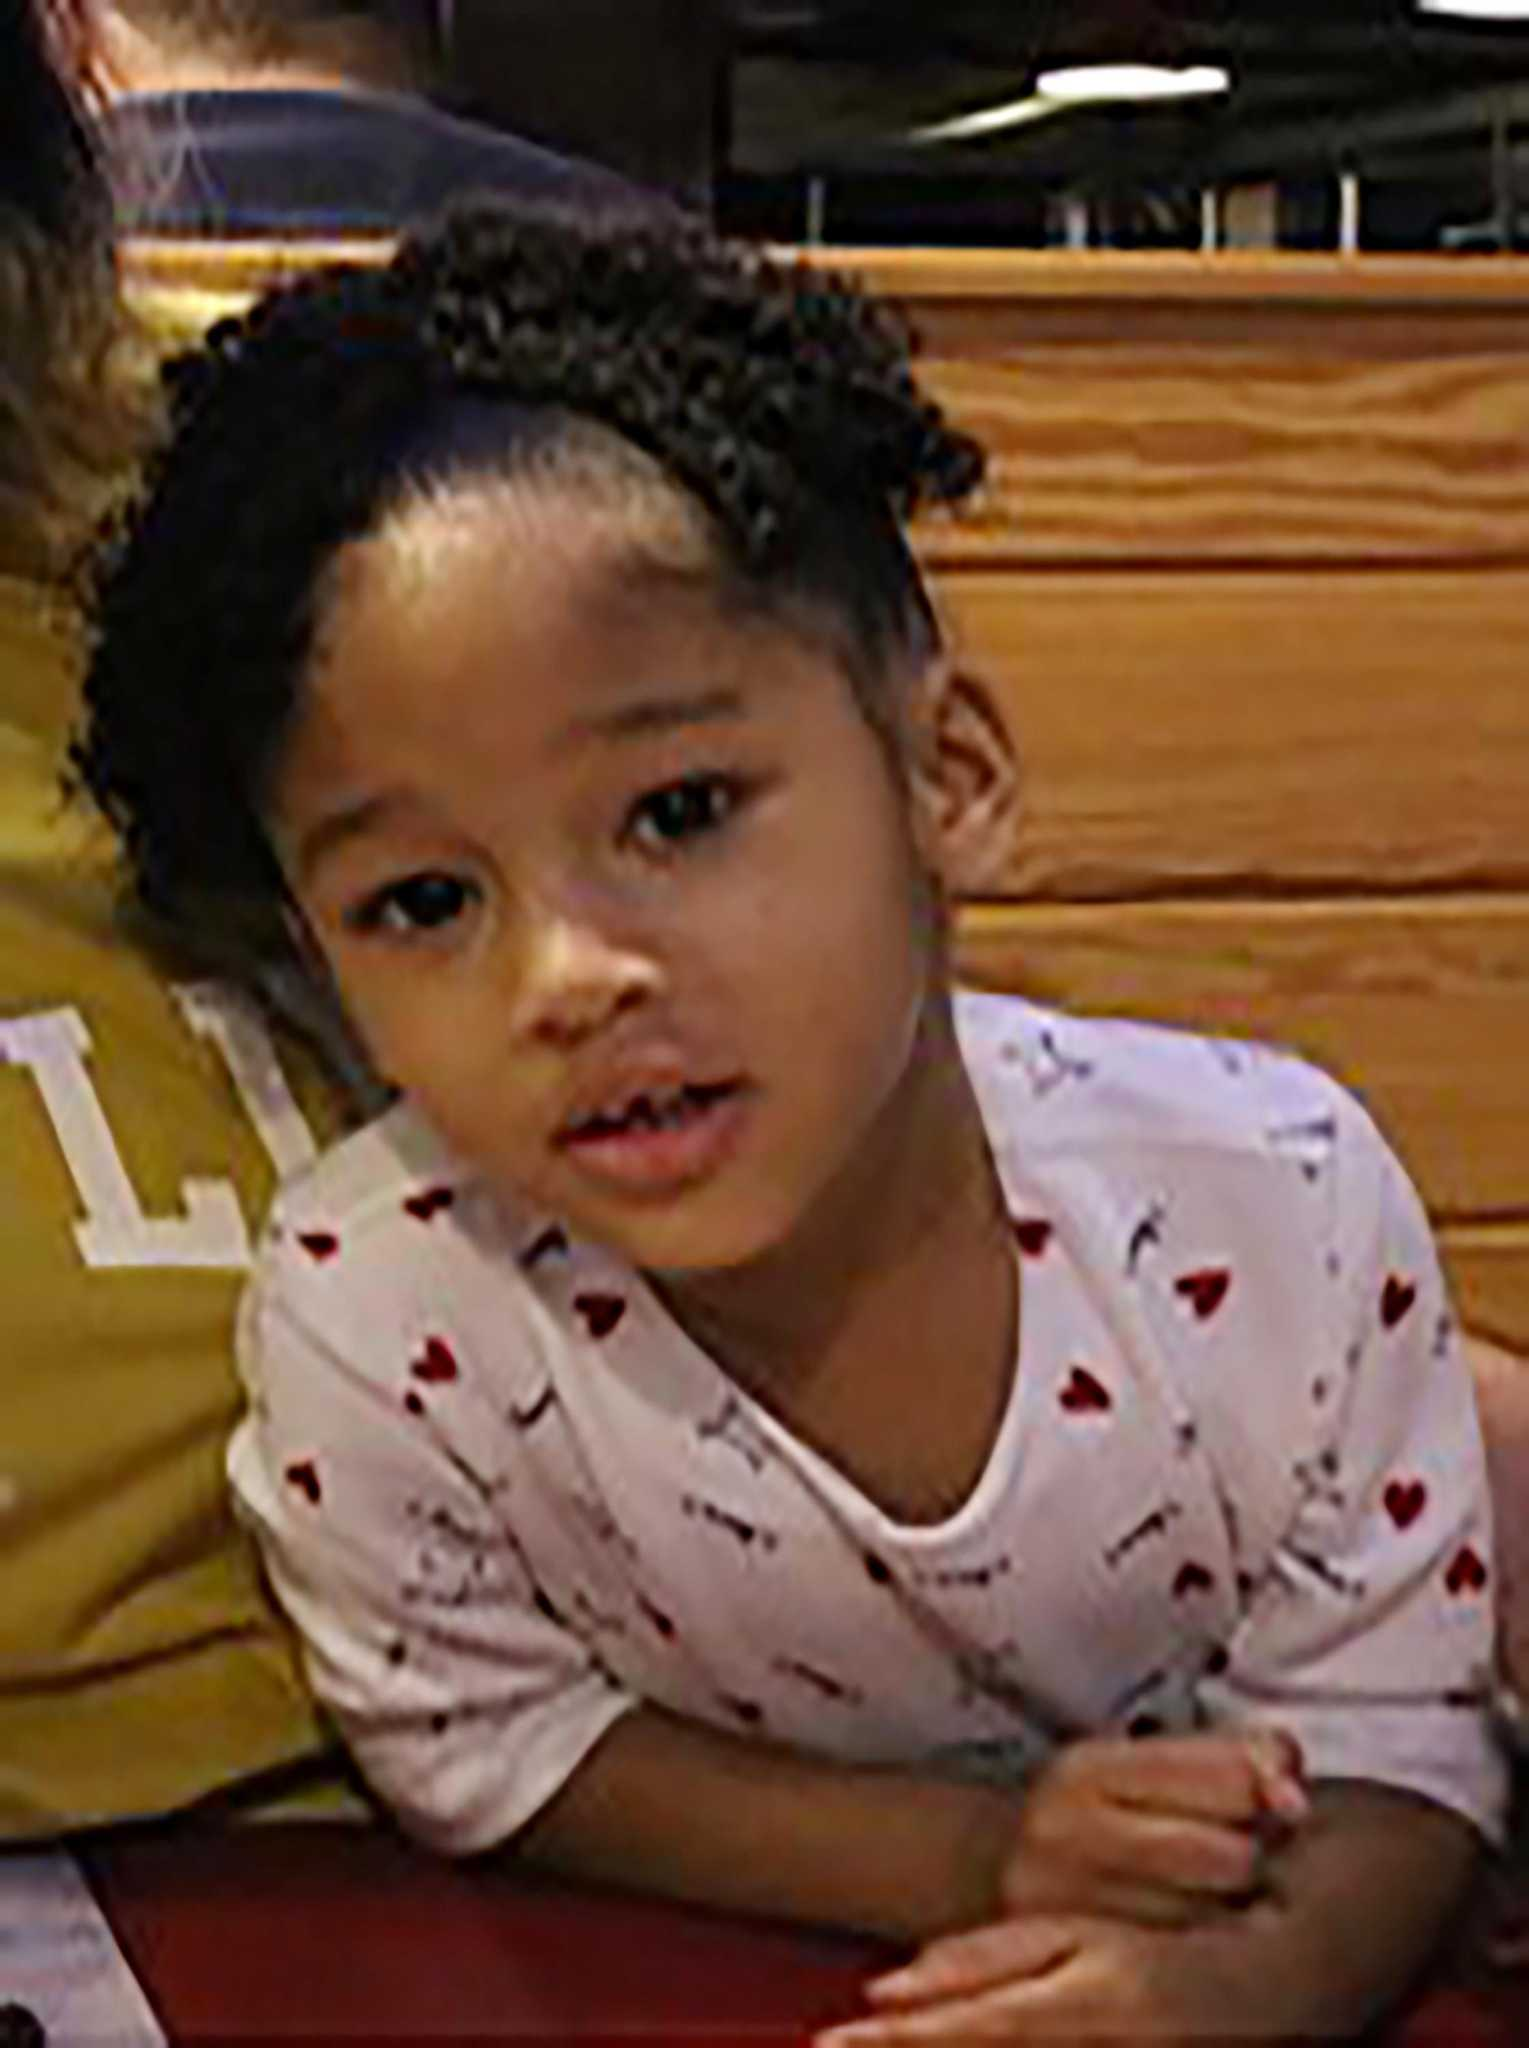 Remains of body believed to be Maleah Davis arrive in Houston